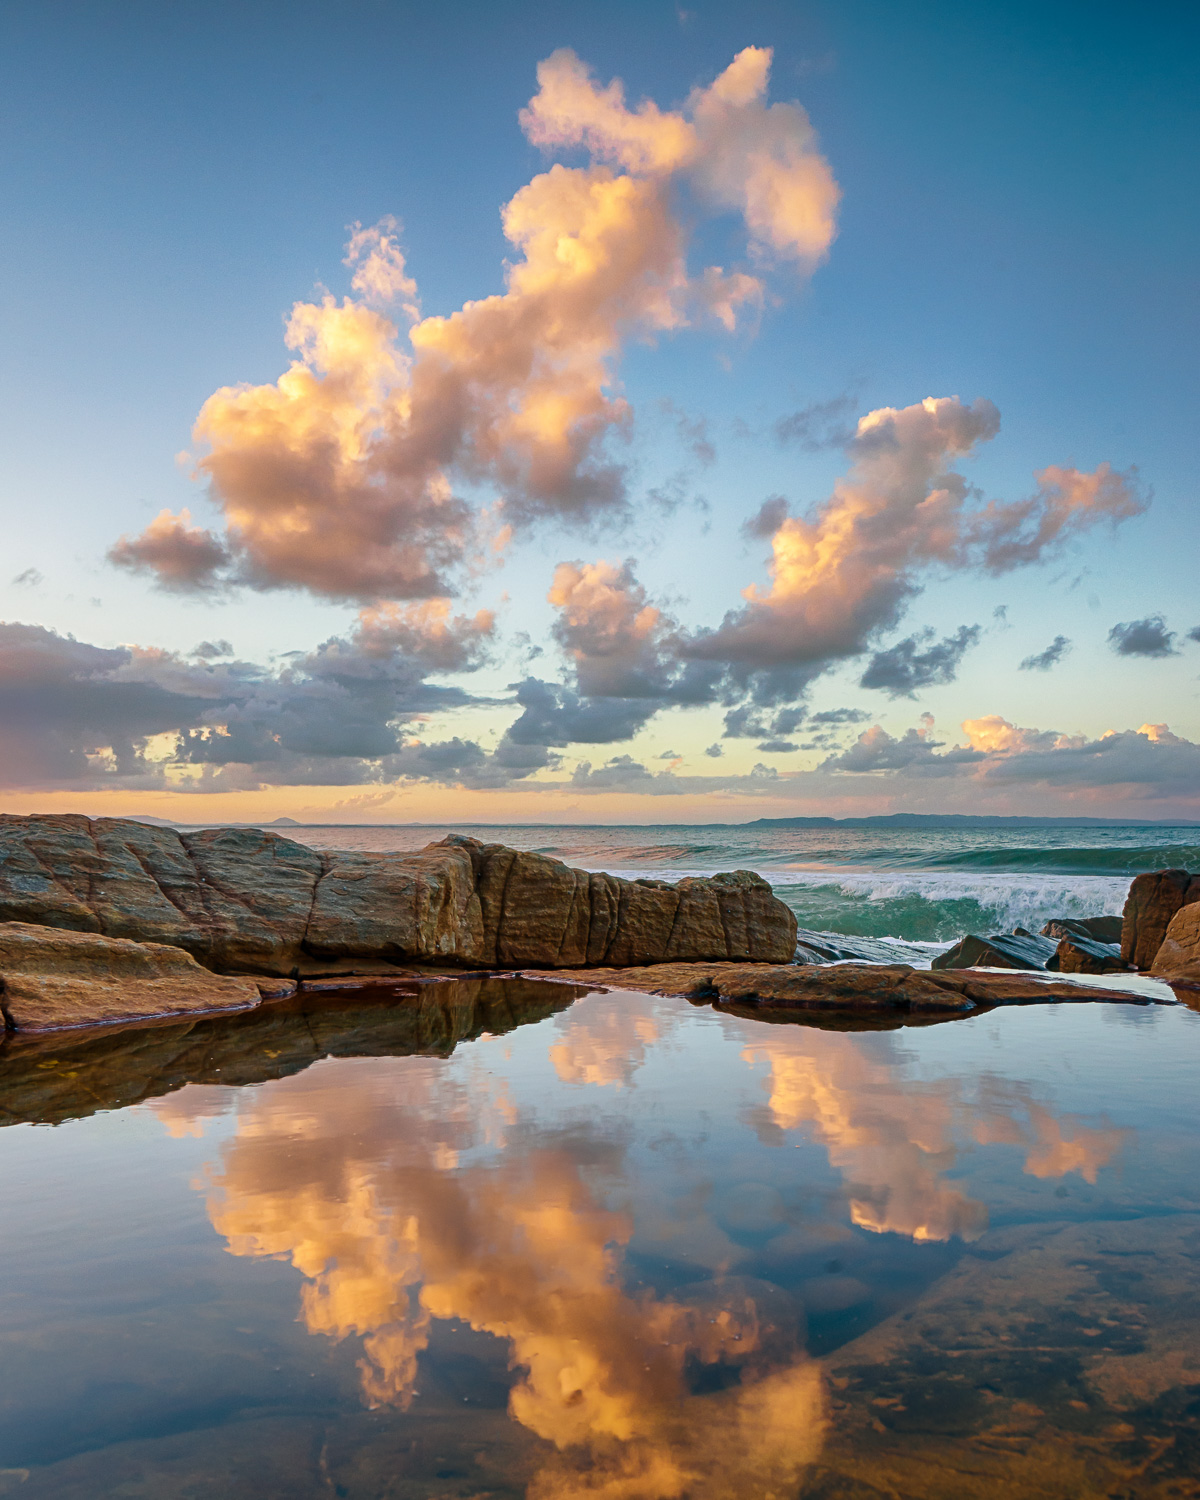 How to Work a Location to Get More Great Photos - sunset and reflection in water